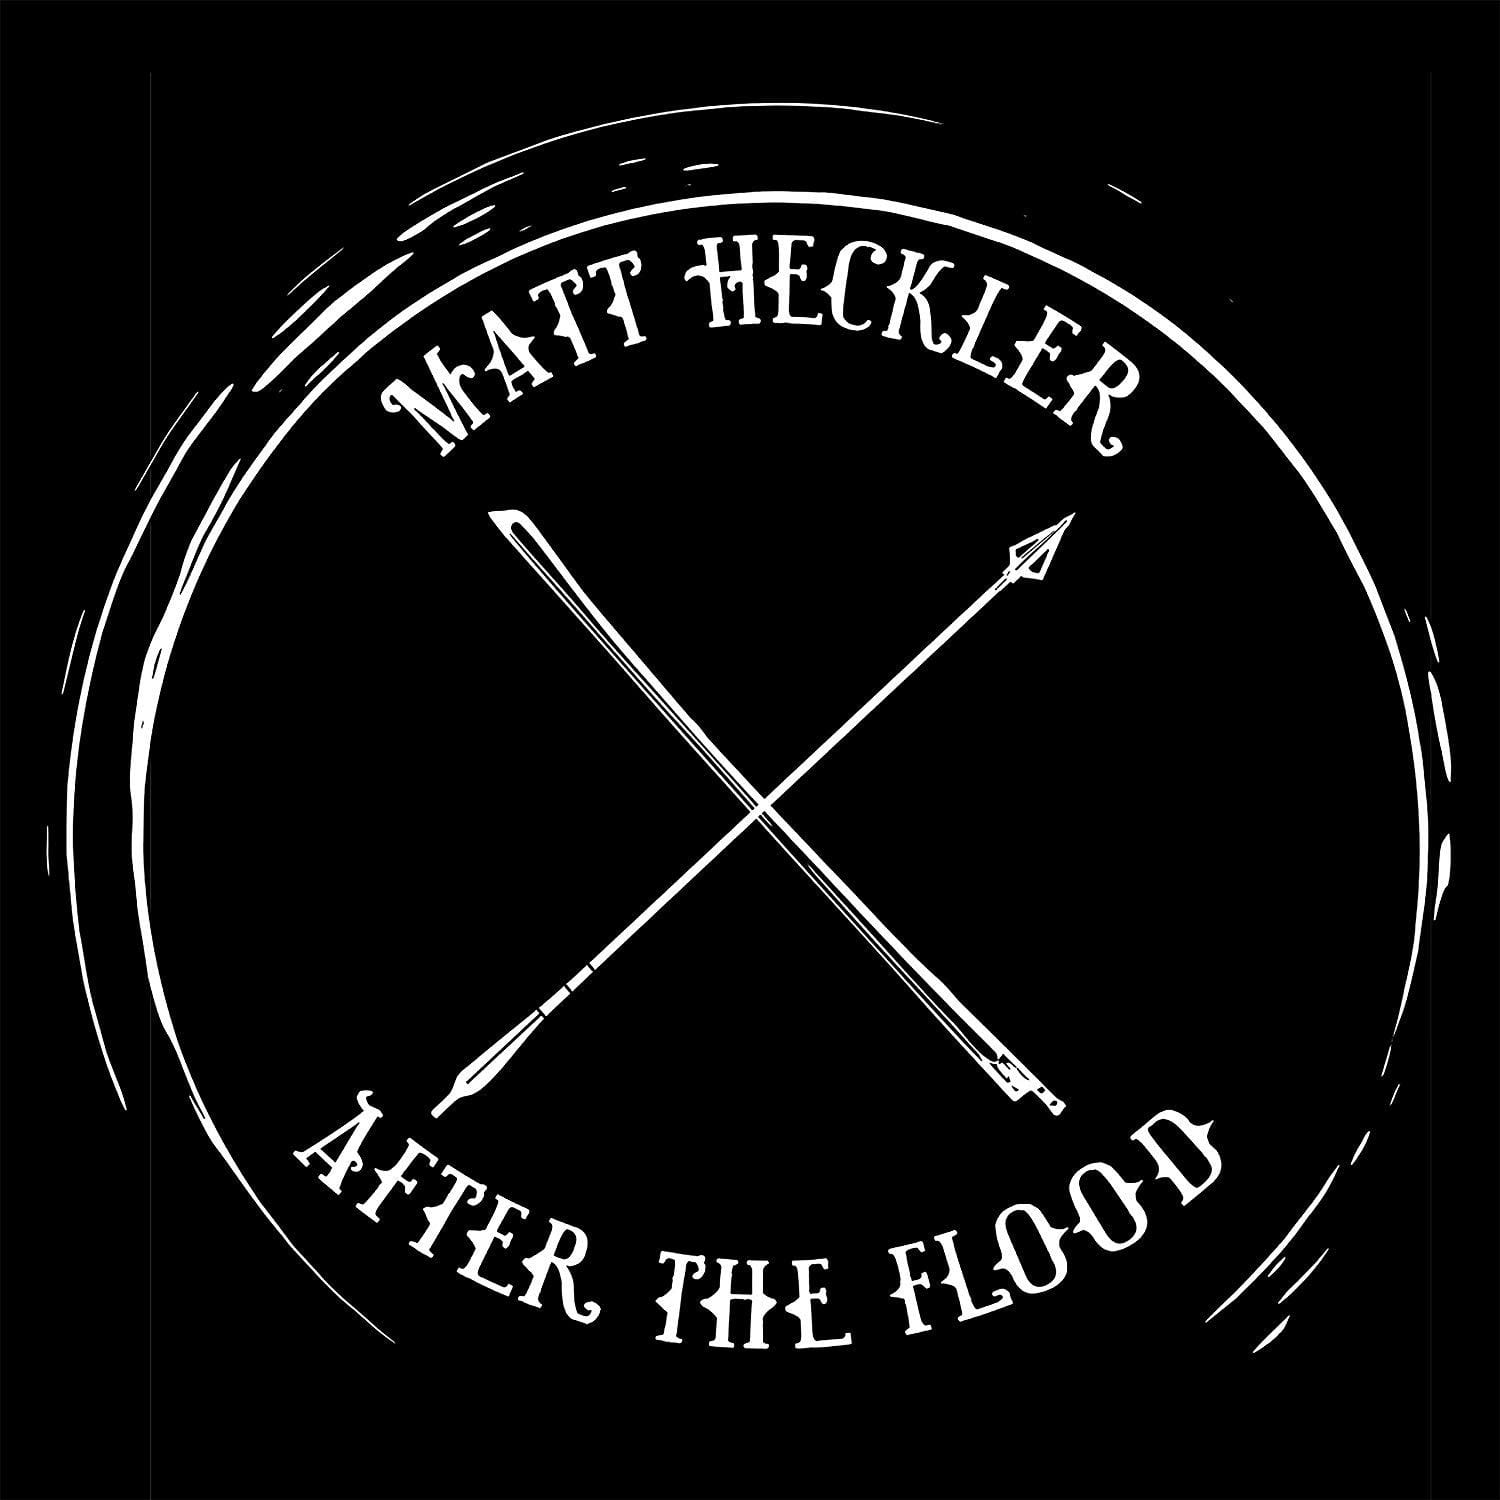 Matt Heckler - After The Flood [LP] (download, insert, vinyl contains hidden etchings)